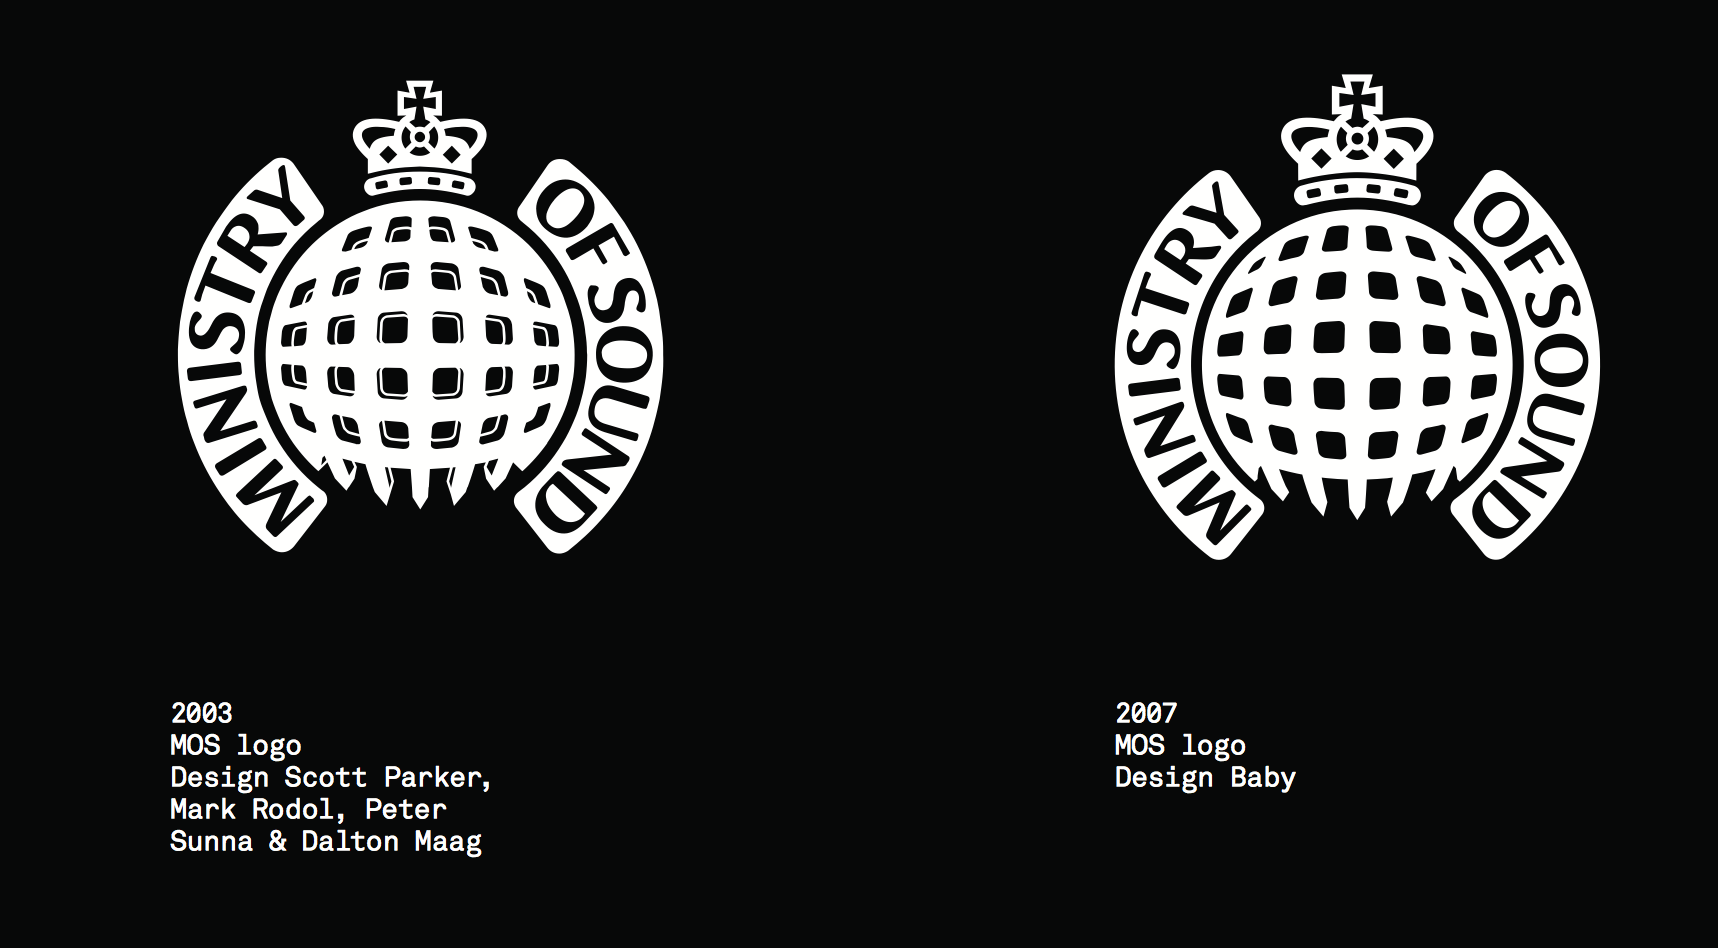 Fine tuning: Further iterations of the MoS logo appeared in the early 2000s, keeping faith with the original concept. These images are from Rick Bank's book 'Clubbed: A Visual History of Club Culture'.